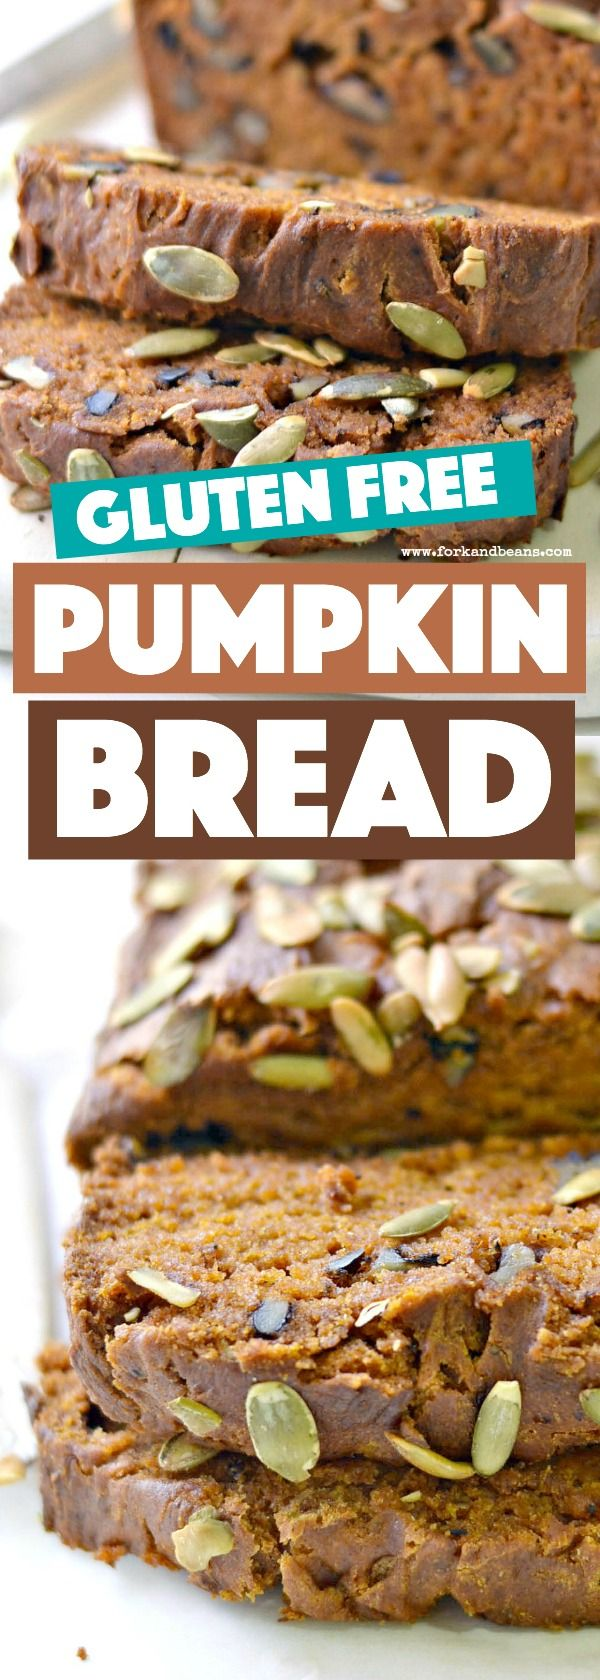 This gluten free vegan pumpkin bread is so moist and tasty, you'll never know it's made without gluten, eggs, and dairy!